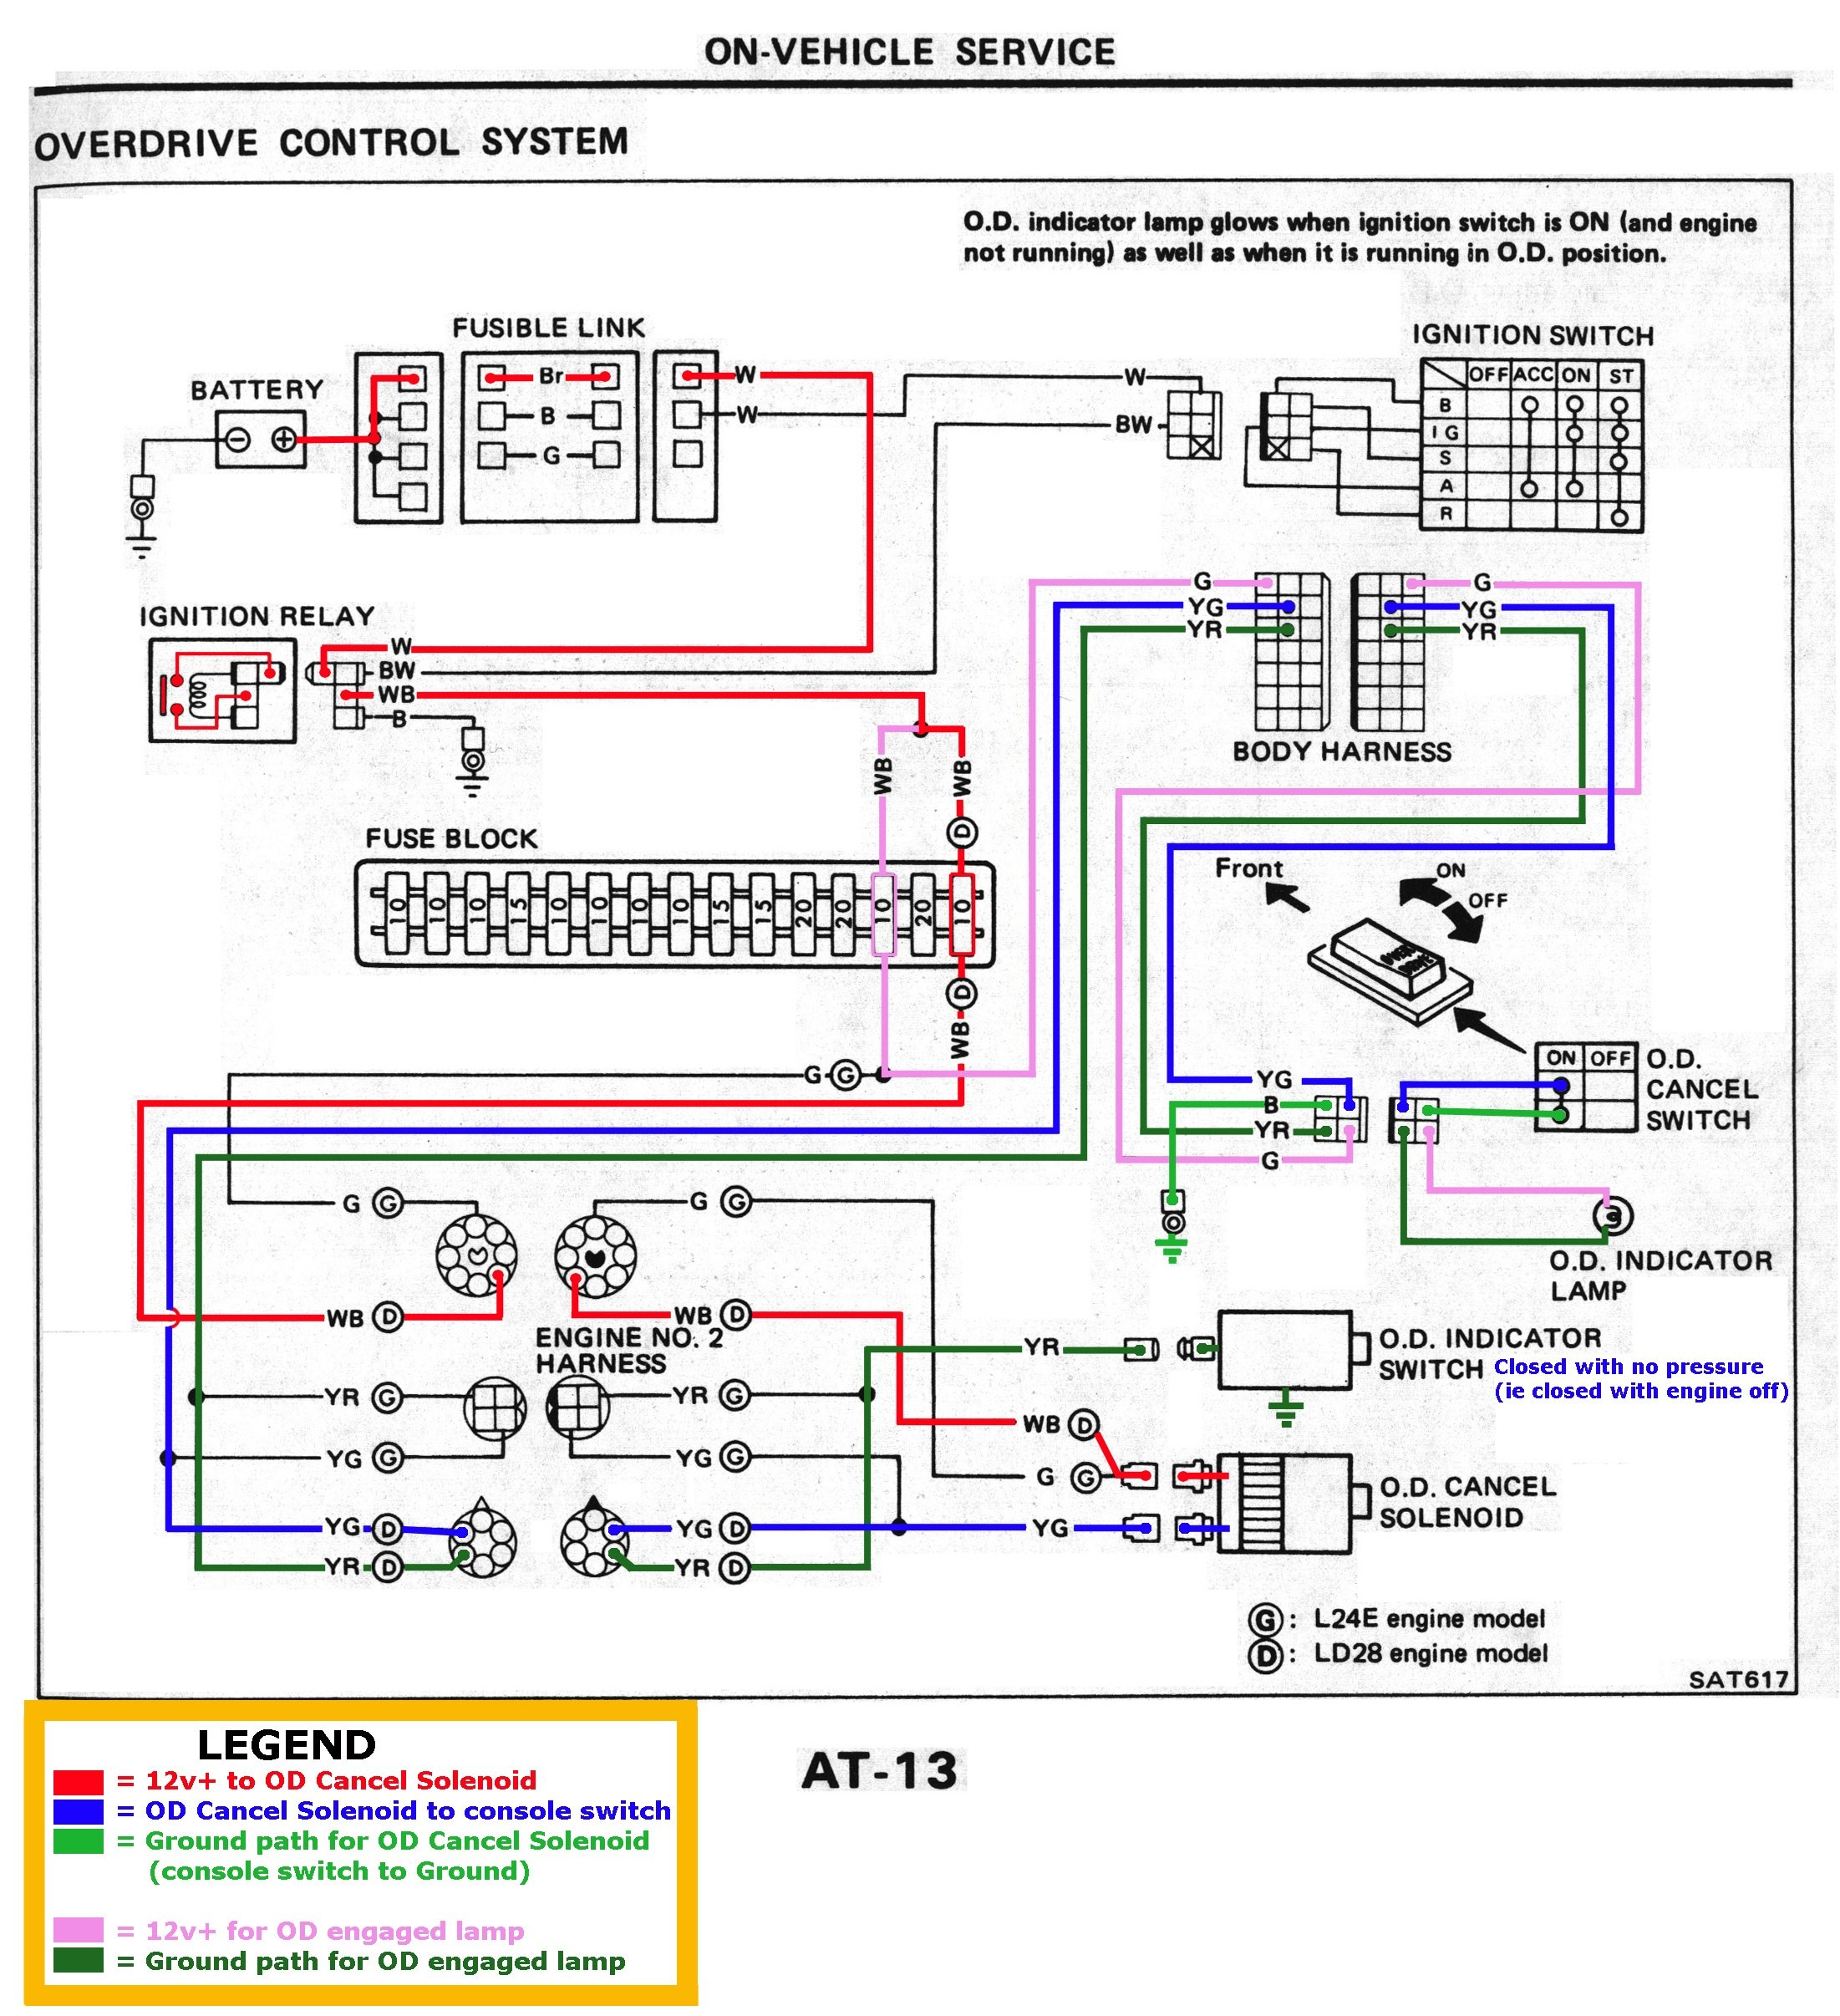 95 Nissan Maxima Engine Diagram Wiring Moreover 2001 Silverado Compartment Also Ignition Switch 240z Of